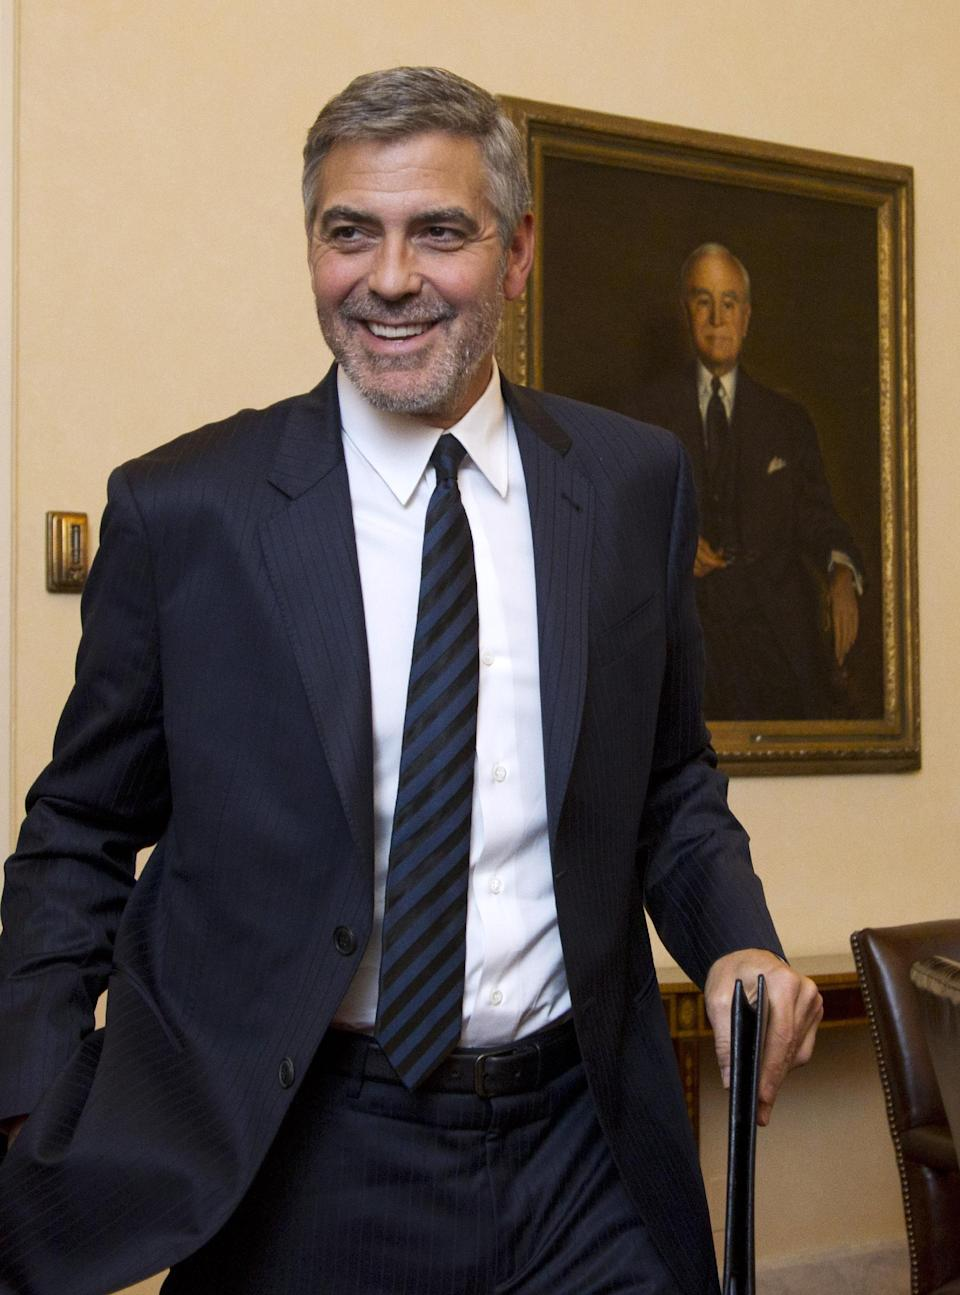 Actor George Clooney greets reporters on Capitol Hill in Washington, Wednesday, March 14, 2012, as he arrives for an interview with The Associated Press, and other news organizations. Clooney was to testify before the Senate Foreign Relations Committee hearing on Sudan (AP Photo/Manuel Balce Ceneta)